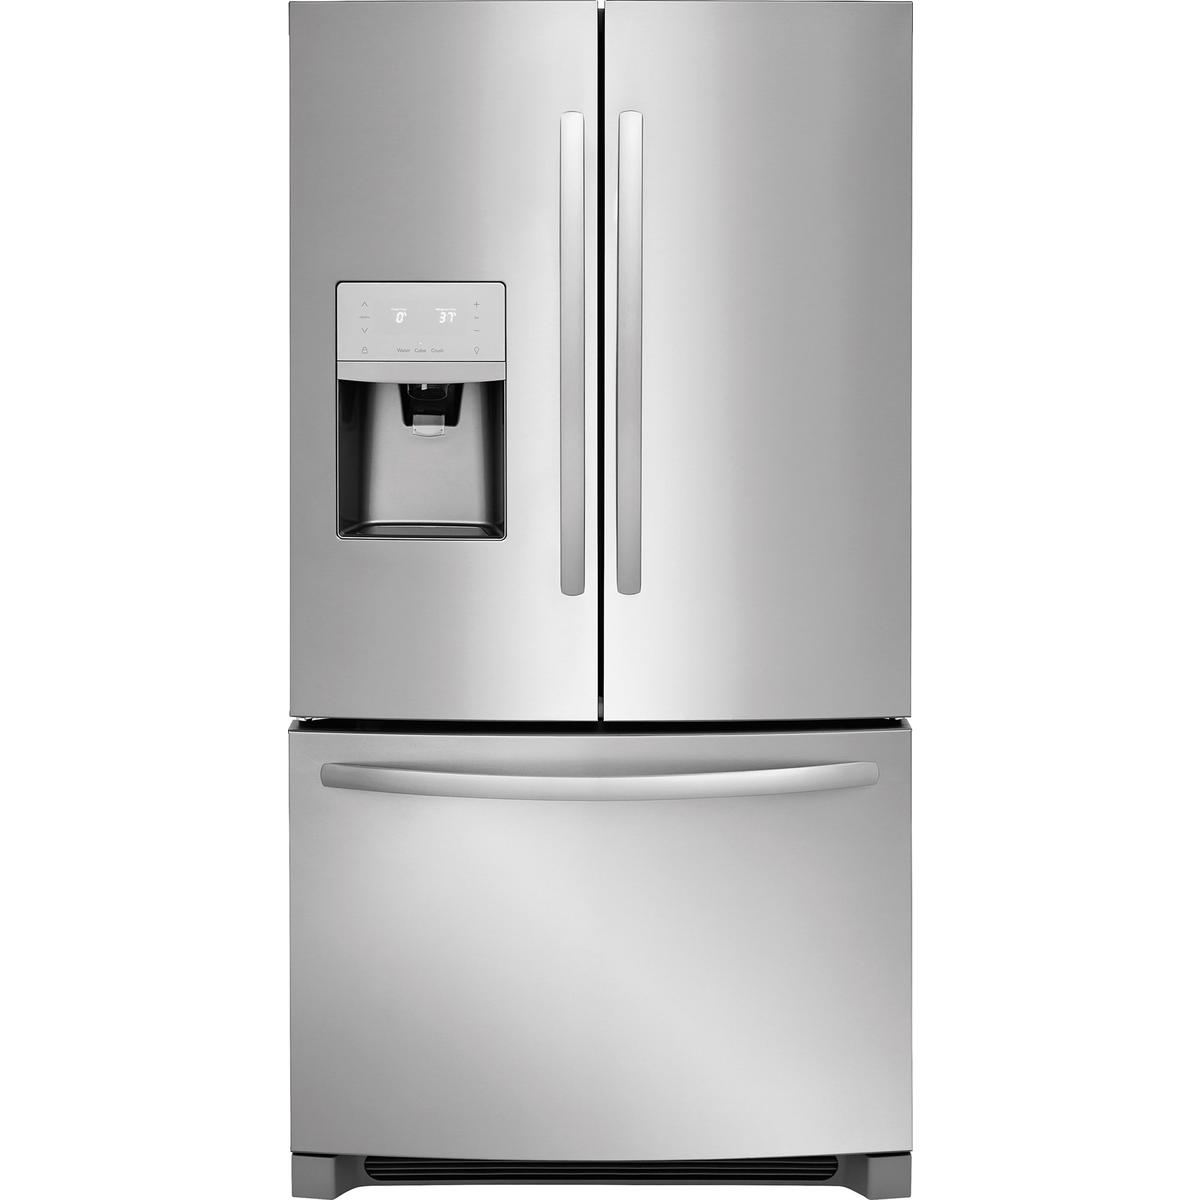 Frigidaire FFHB2750TS 26.8 cu. ft. French Door Refrigerator – Stainless Steel